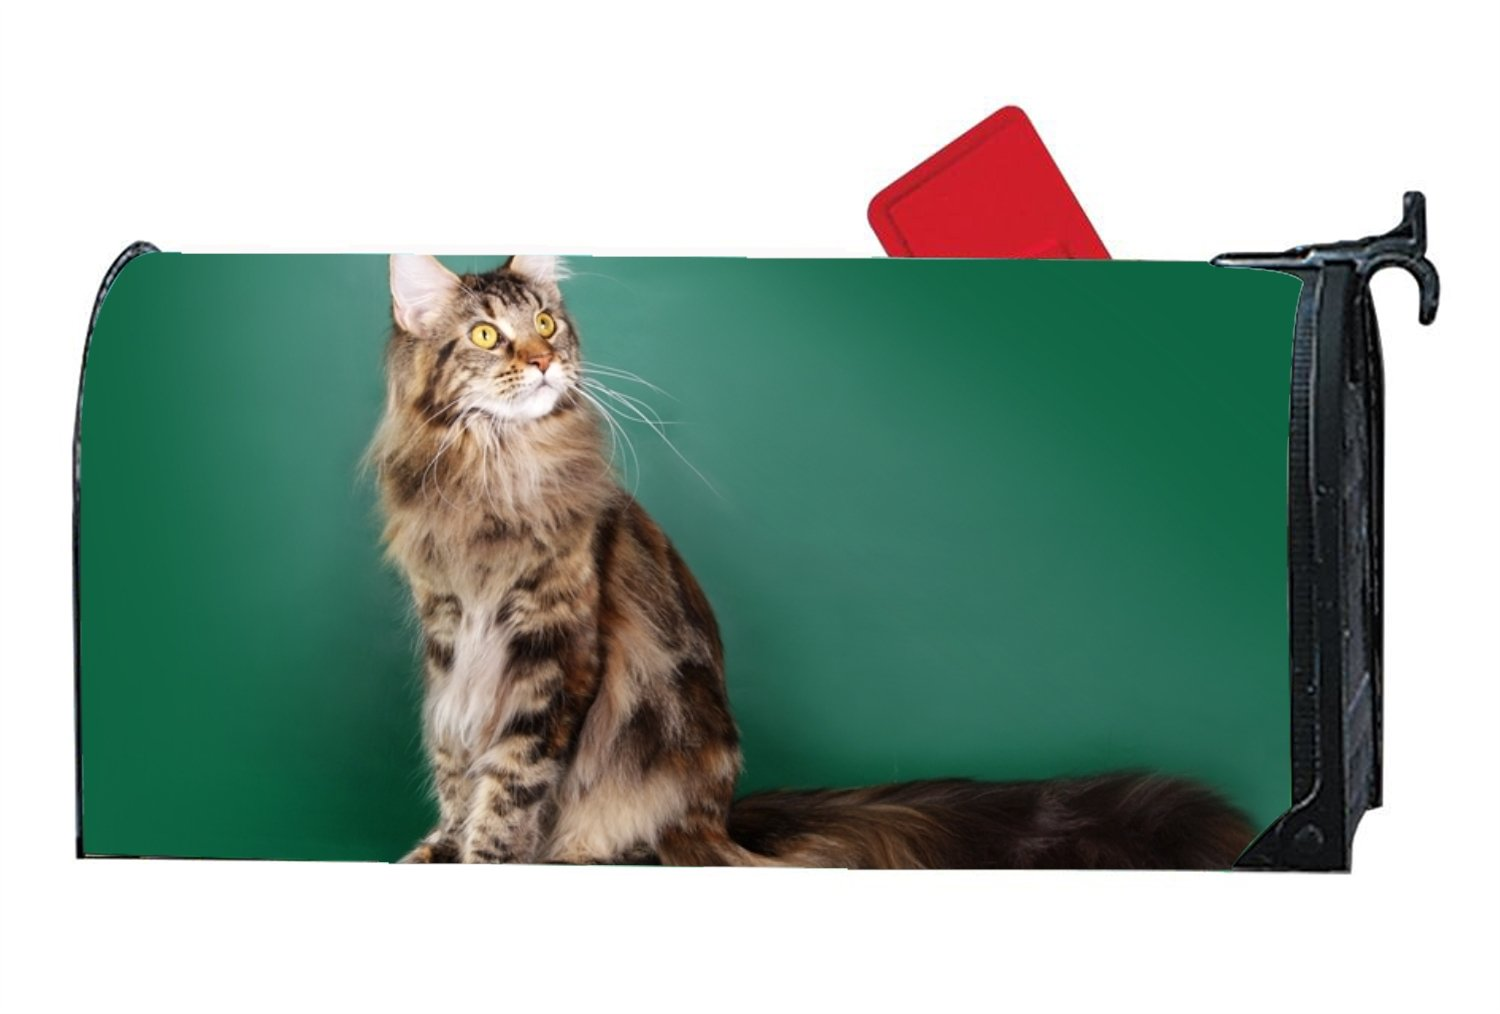 KSLIDS Shimmering Mailbox Makeover Beautiful Maine Coon Cat On A Green Mailbox Makover Cover Garden,Outdoor,Home Magnetic